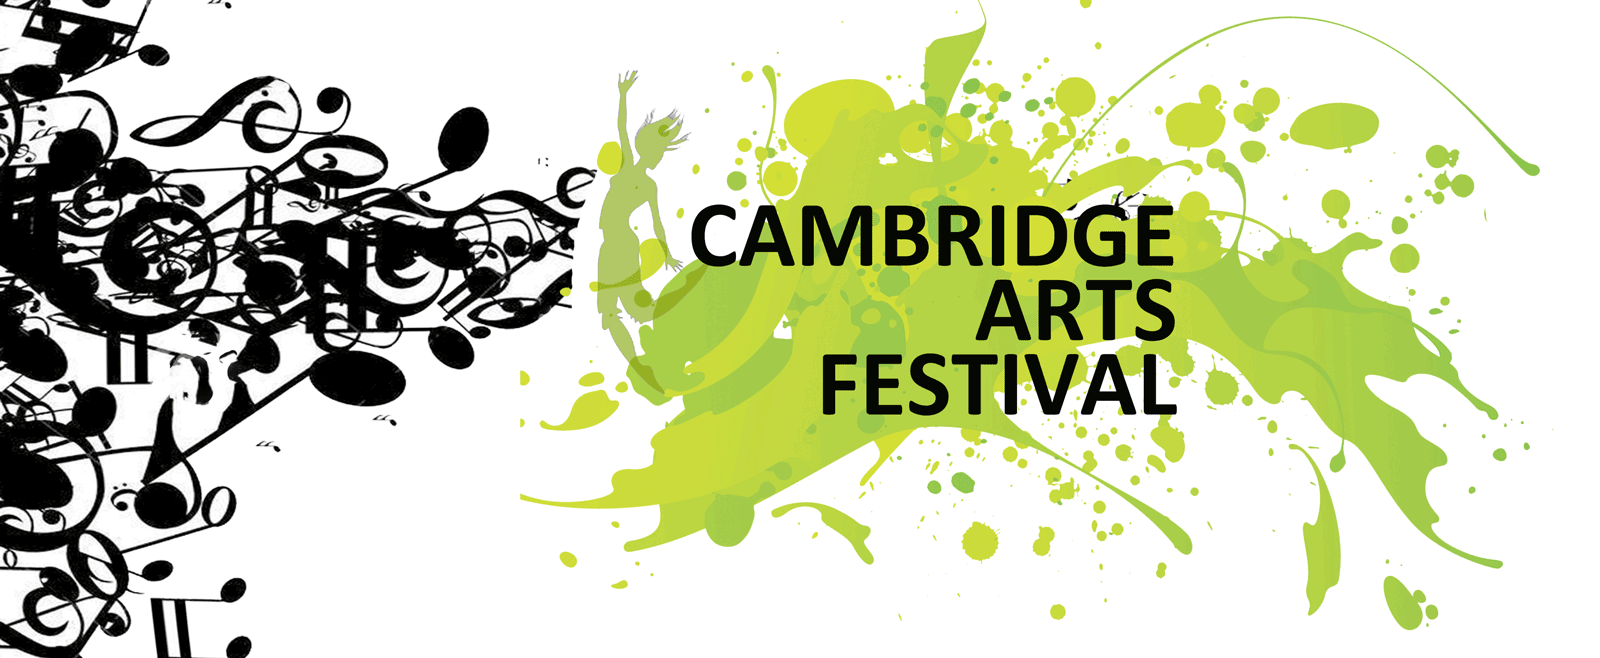 Cambridge Arts Festival